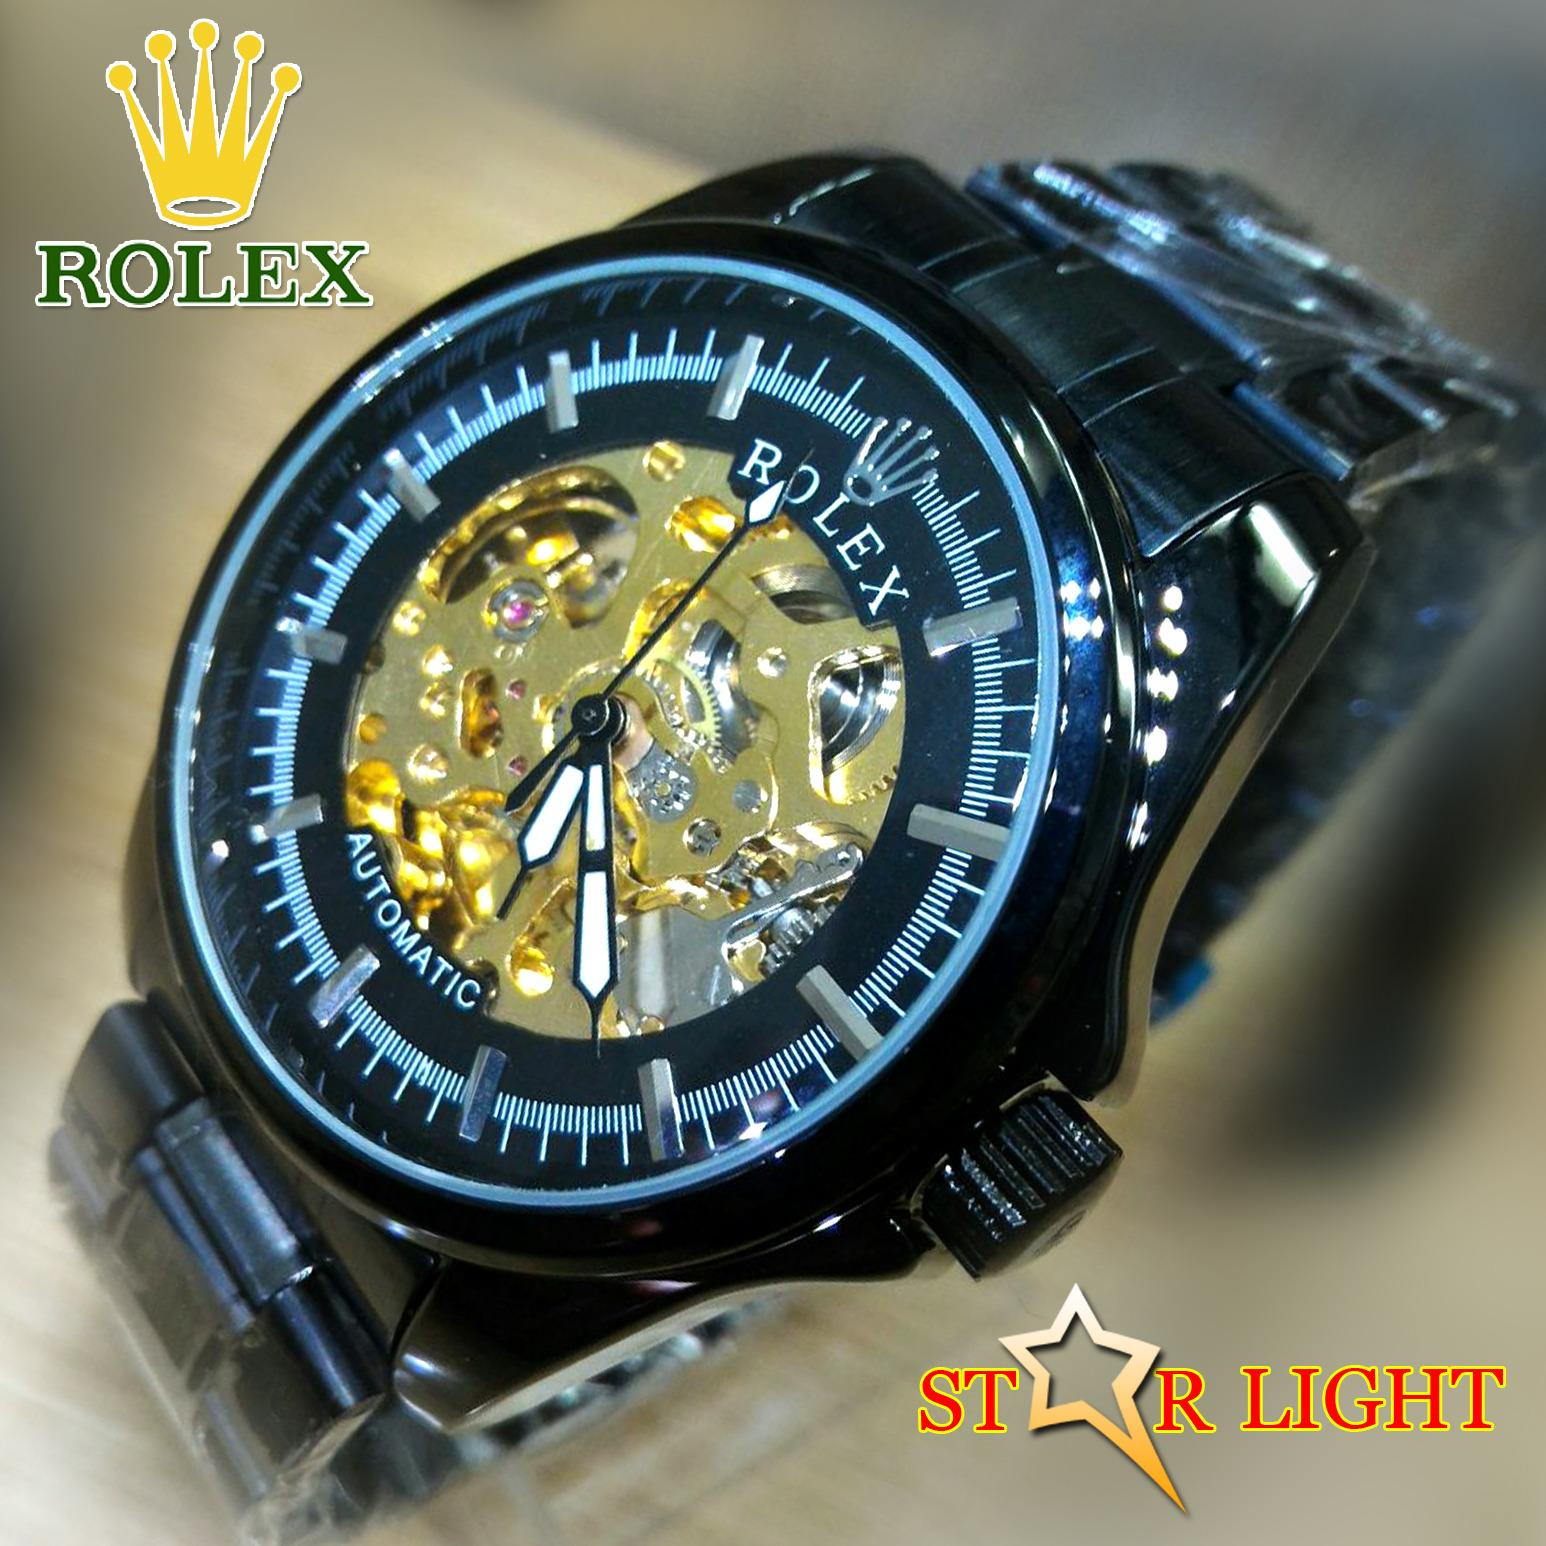 RooLeX_Automatic - Jam Tangan Pria - Rolex Classic Full Stainless Steel - Automatic Movement Water Resistant